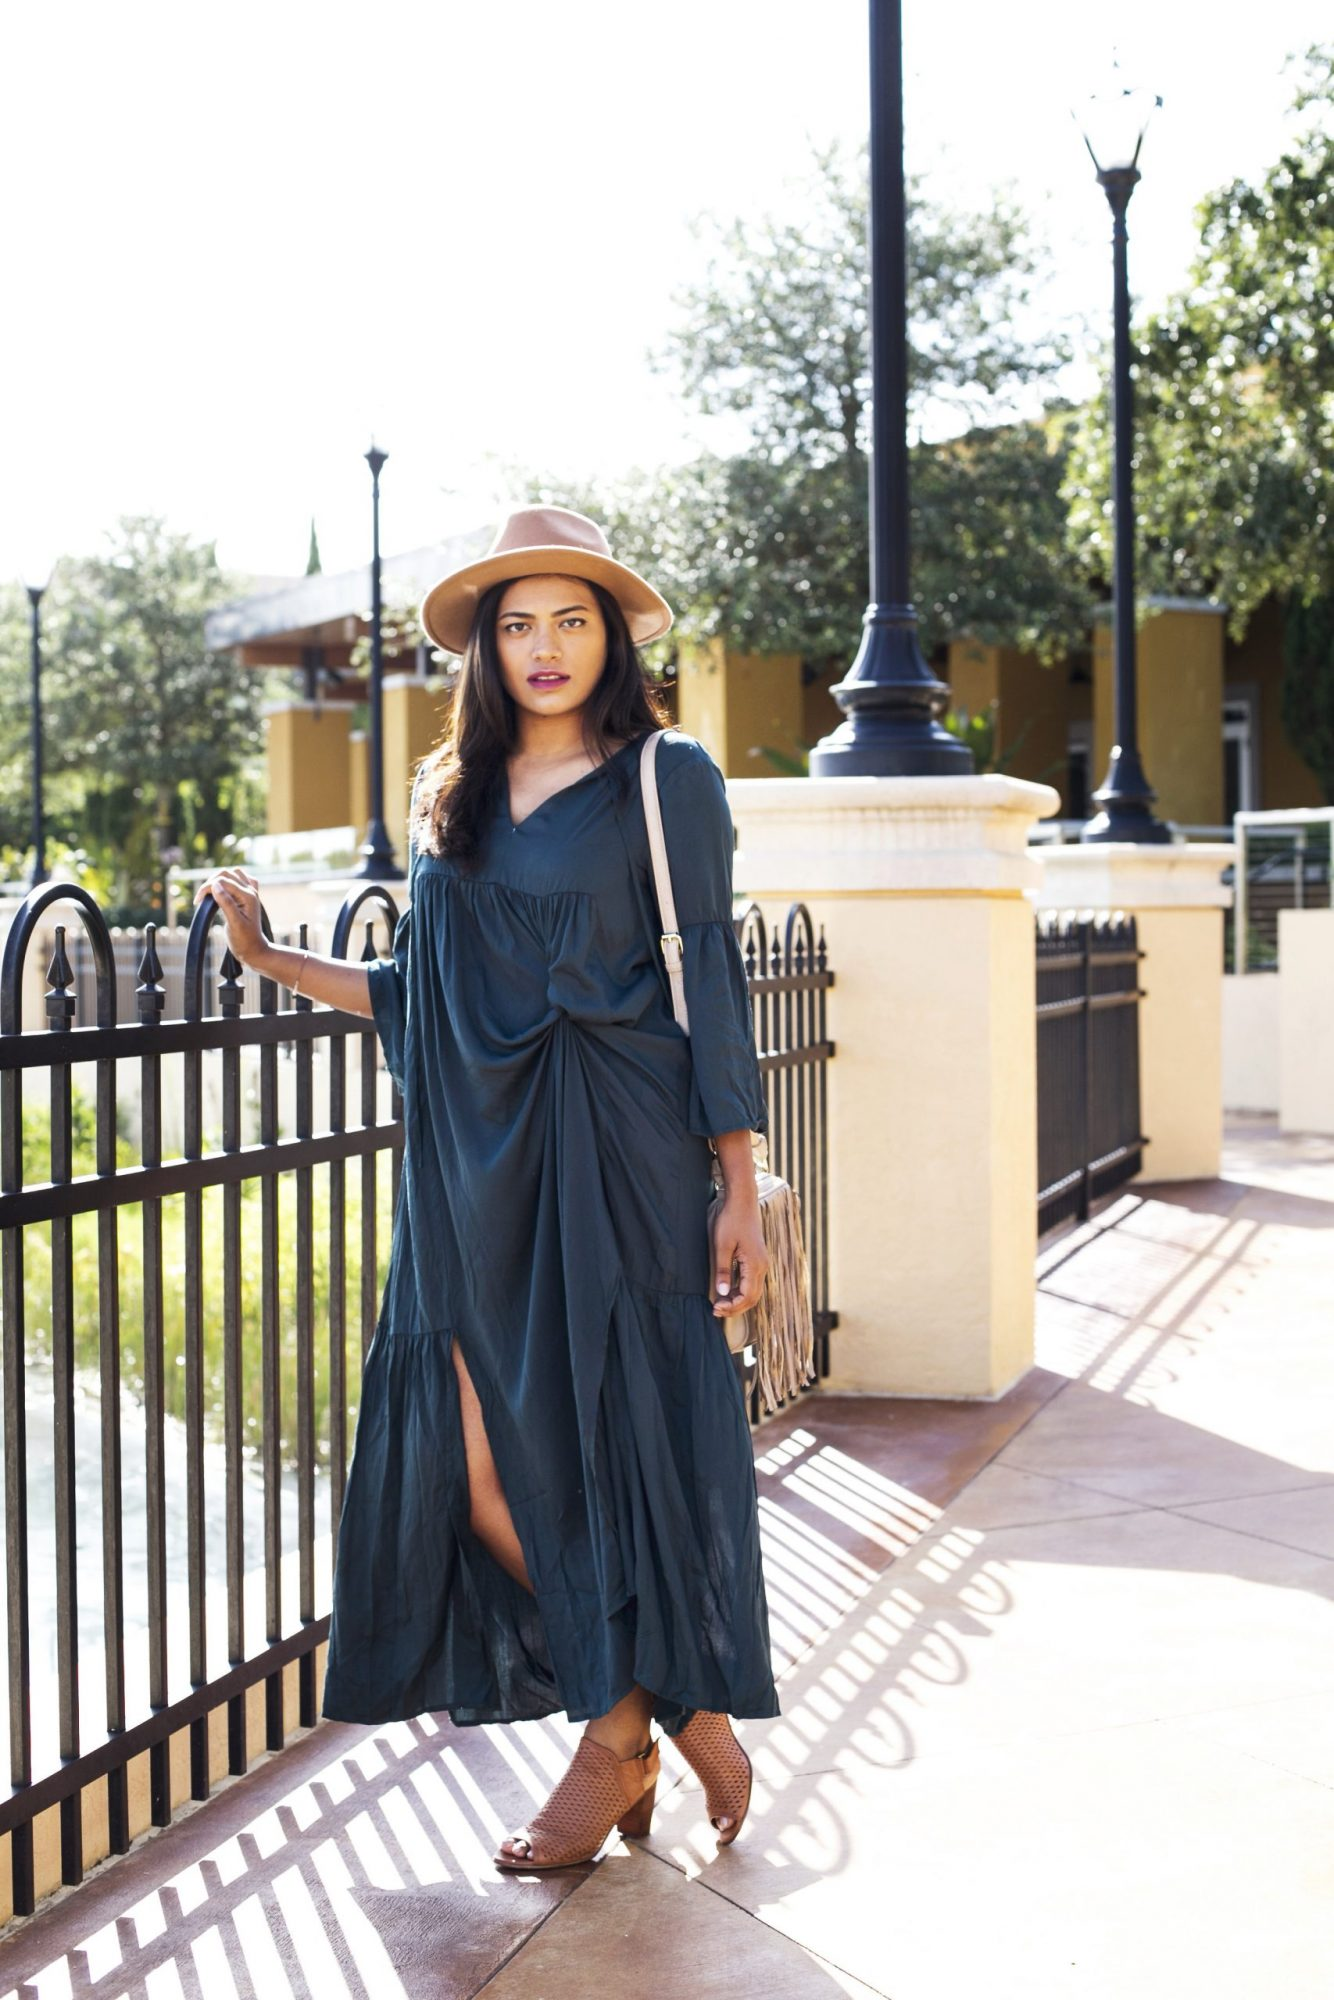 Shein Dark Green Maxi Dress Fall Fashion Chic Stylista